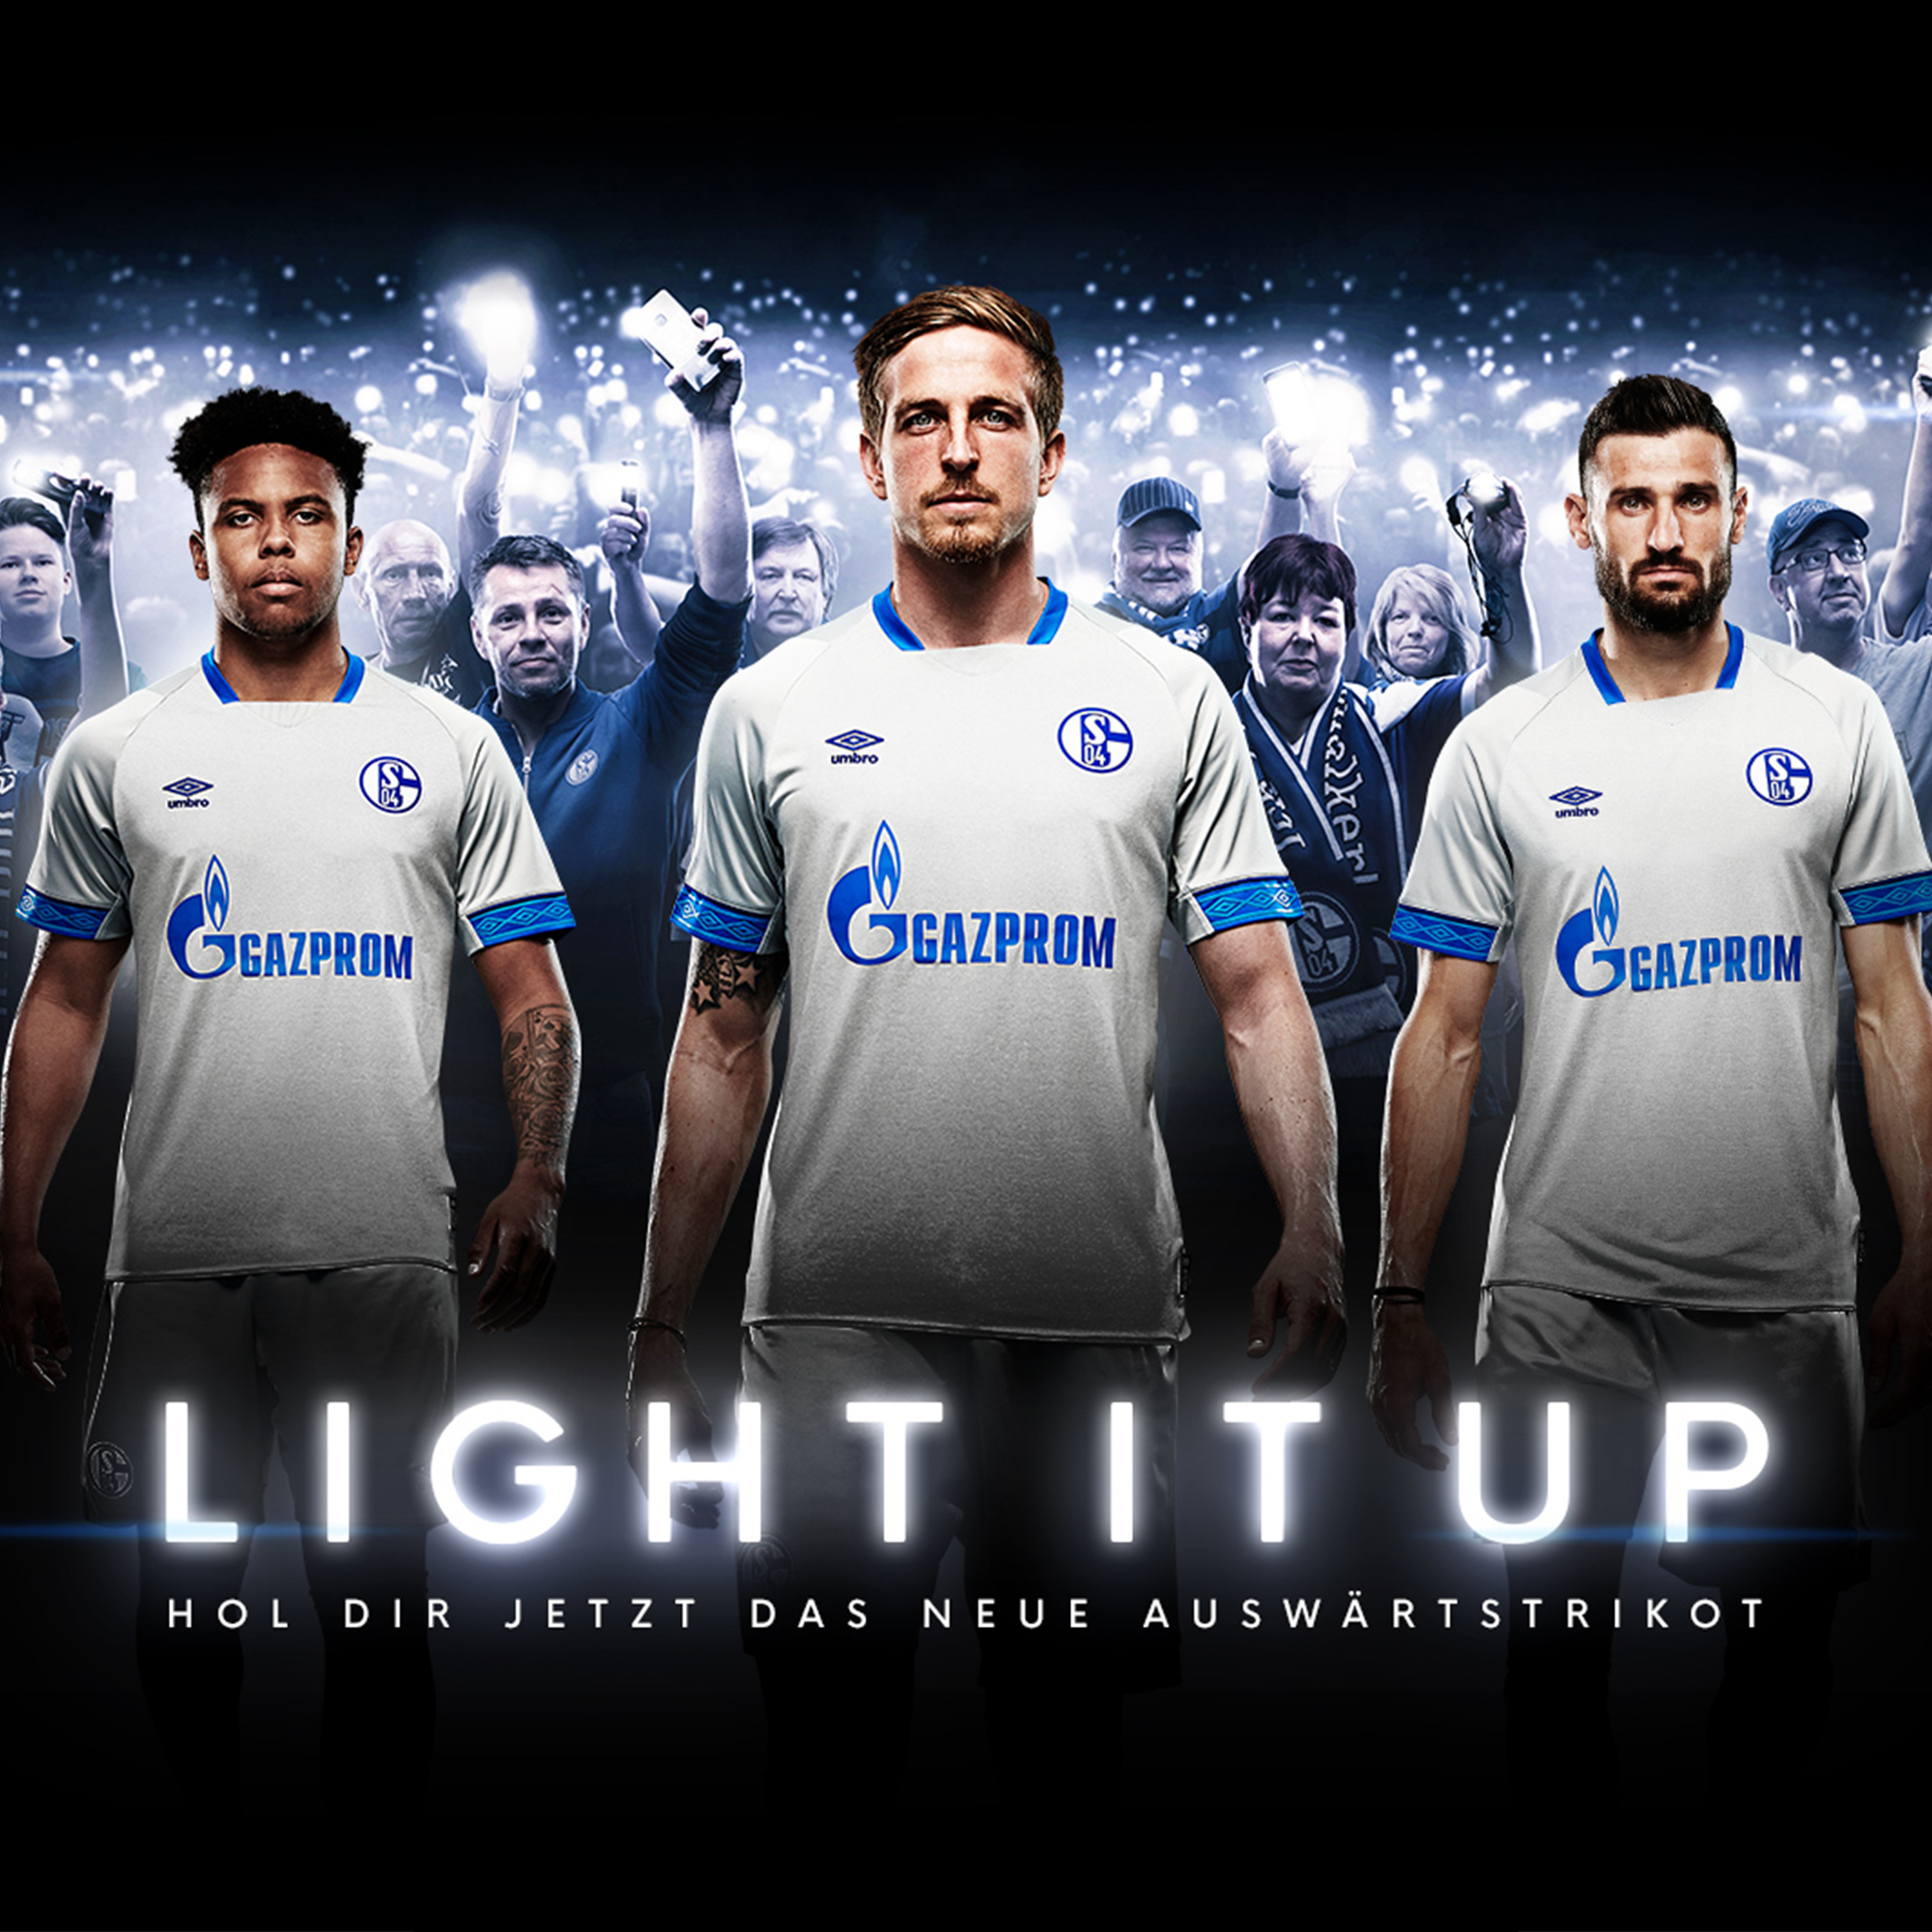 1e955d3bcd5 ... Click to enlarge image schalke 04 18 19 umbro away kit h.jpg